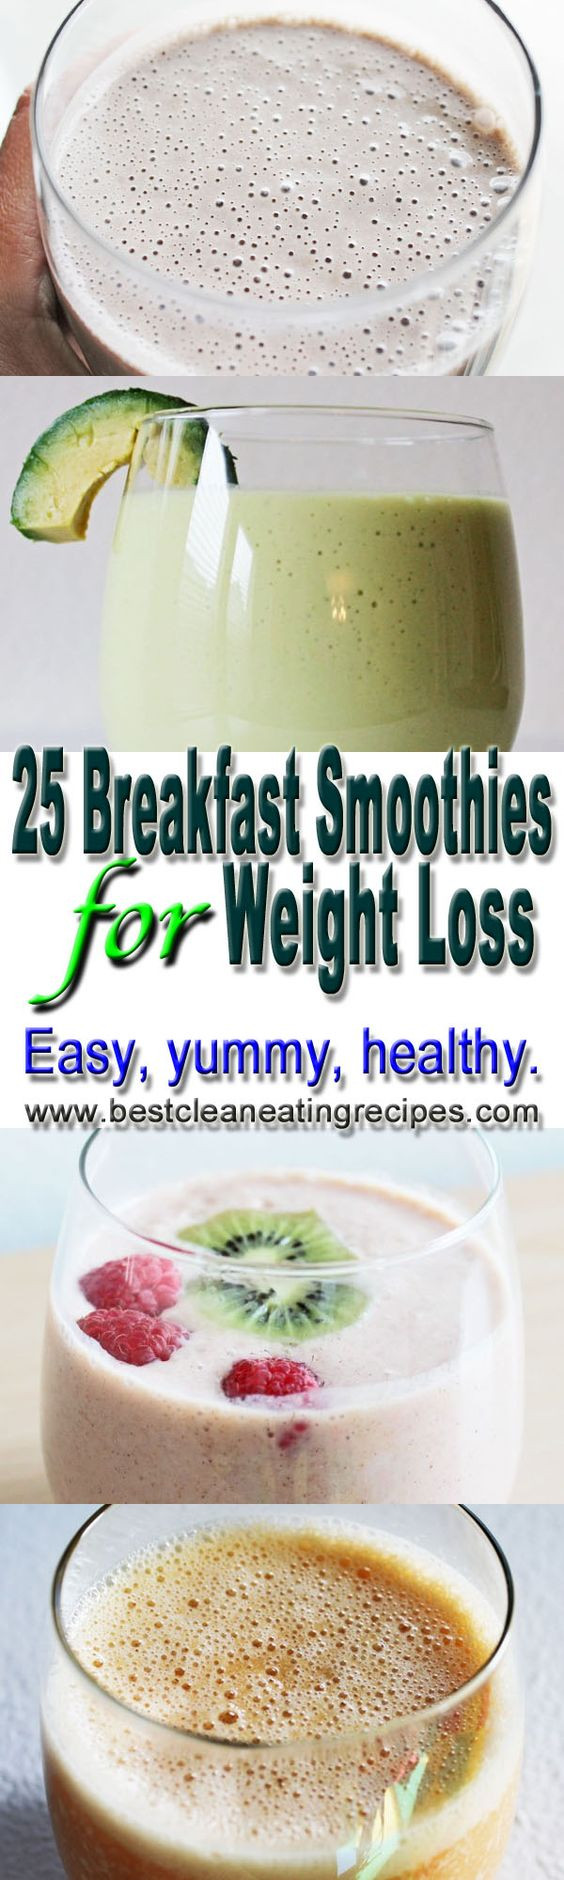 Simple Weight Loss Smoothies  Pinterest • The world's catalog of ideas